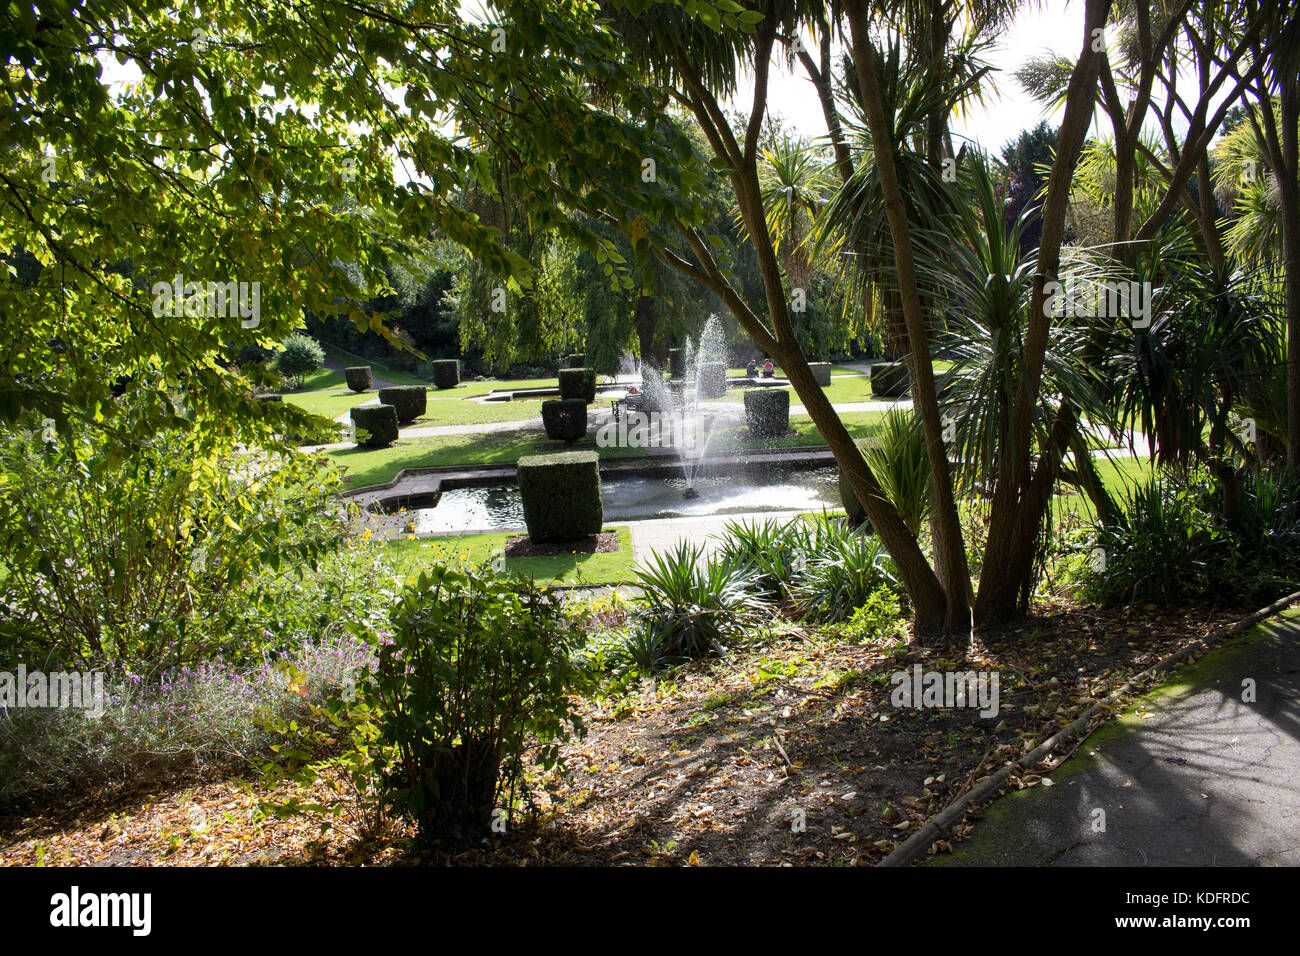 A hidden view of a beautiful garden catching the water fountain in action. - Stock Image